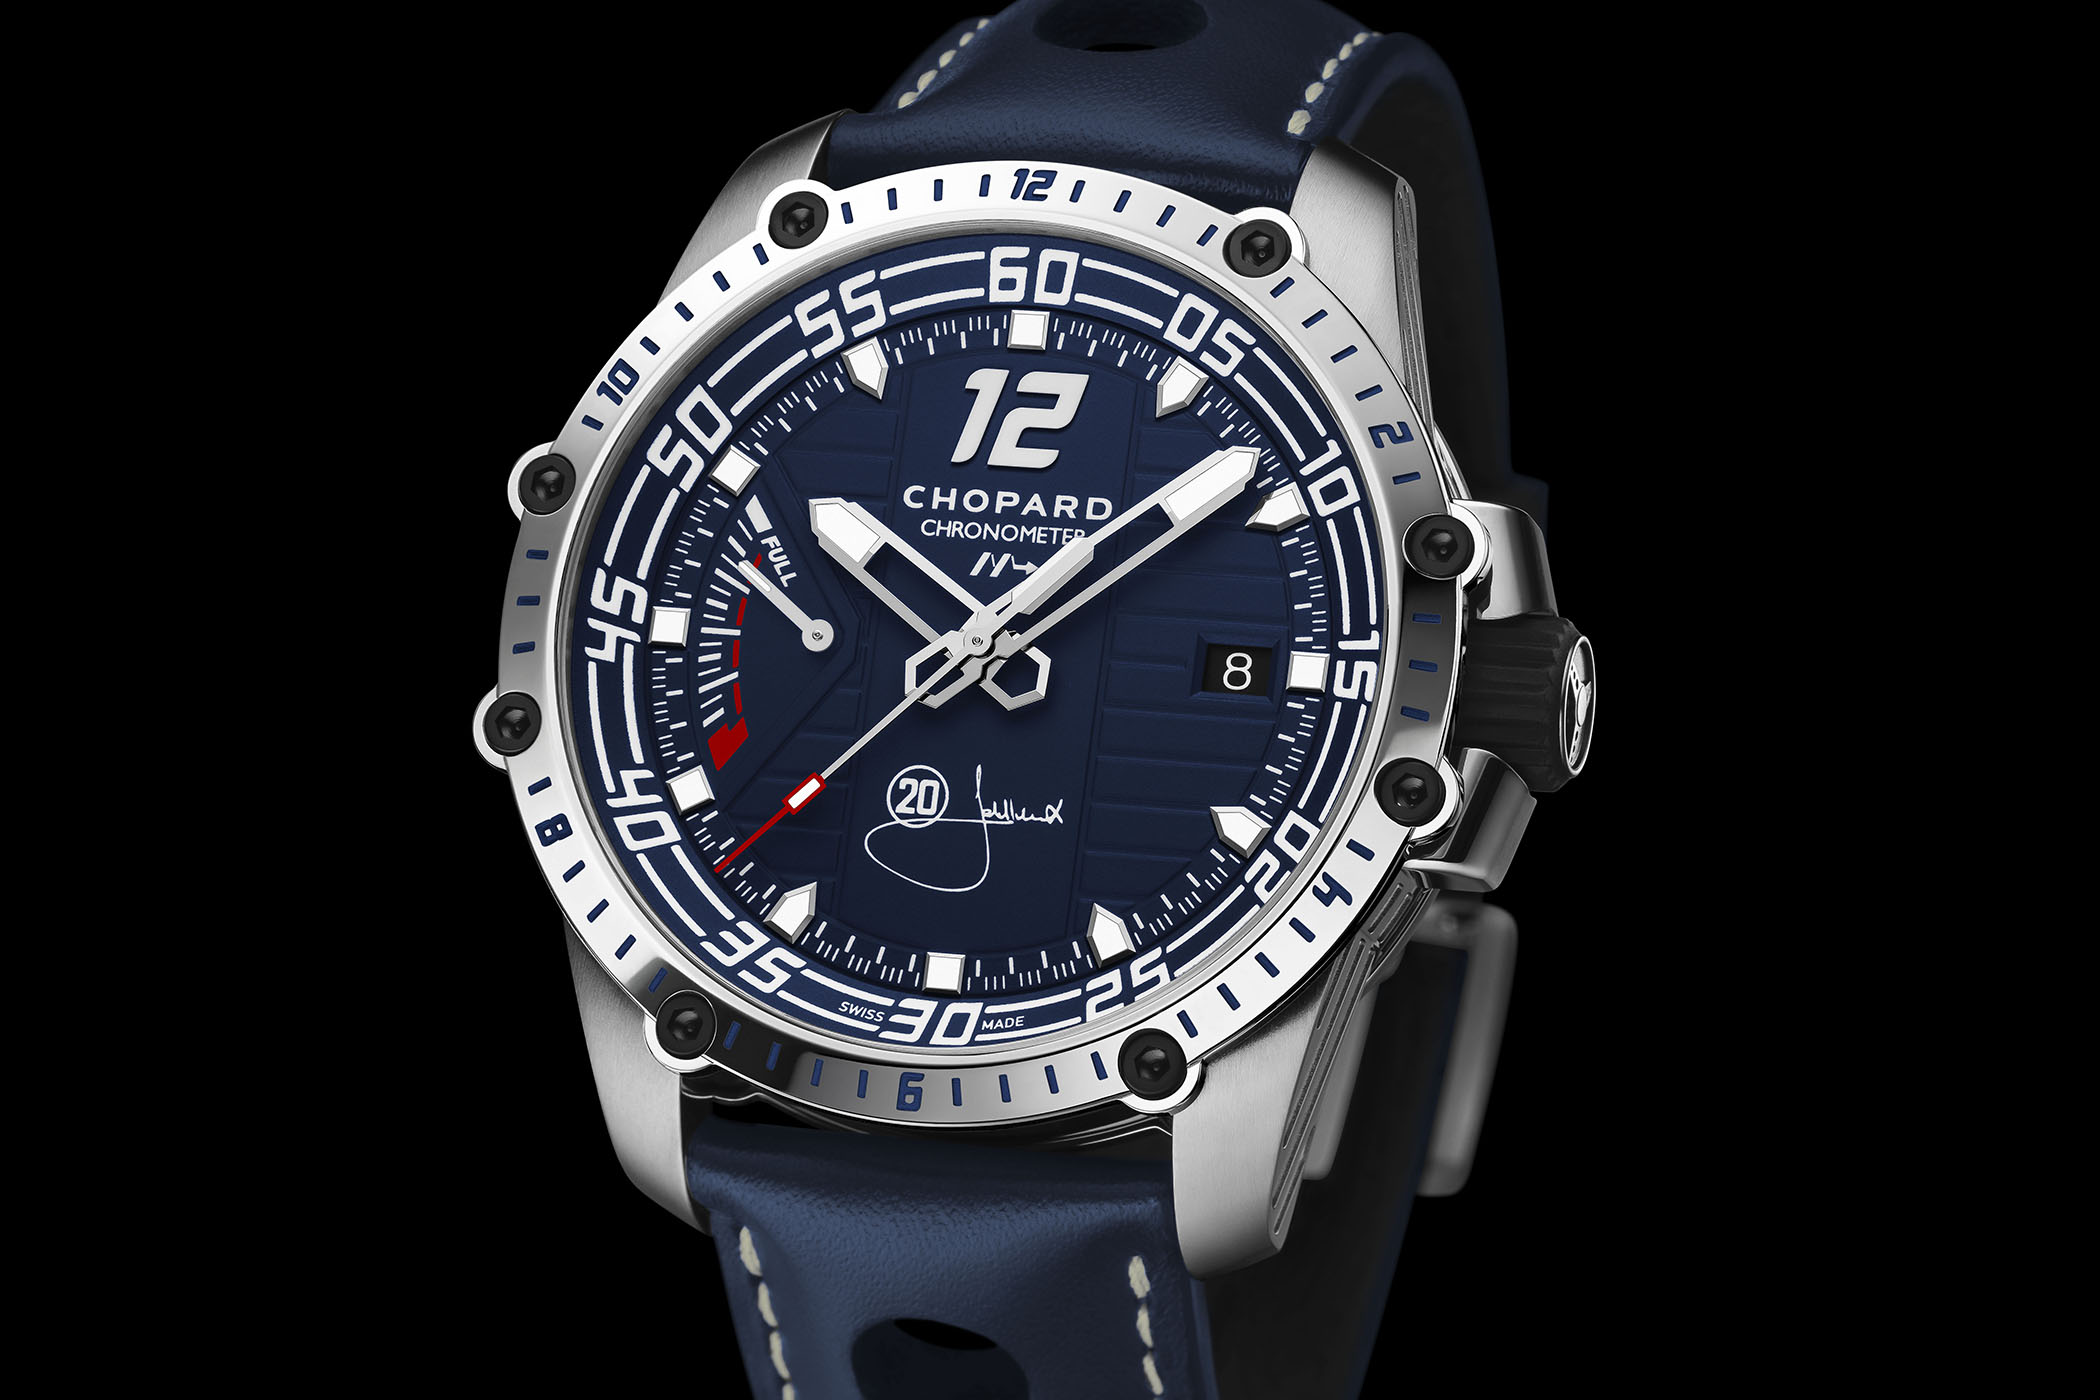 Only Watch 2017 – Chopard Superfast 8Hz, With Unique High-Beat Movement (And a Weekend at Monaco Historique GP with Legend Jacky Ickx)